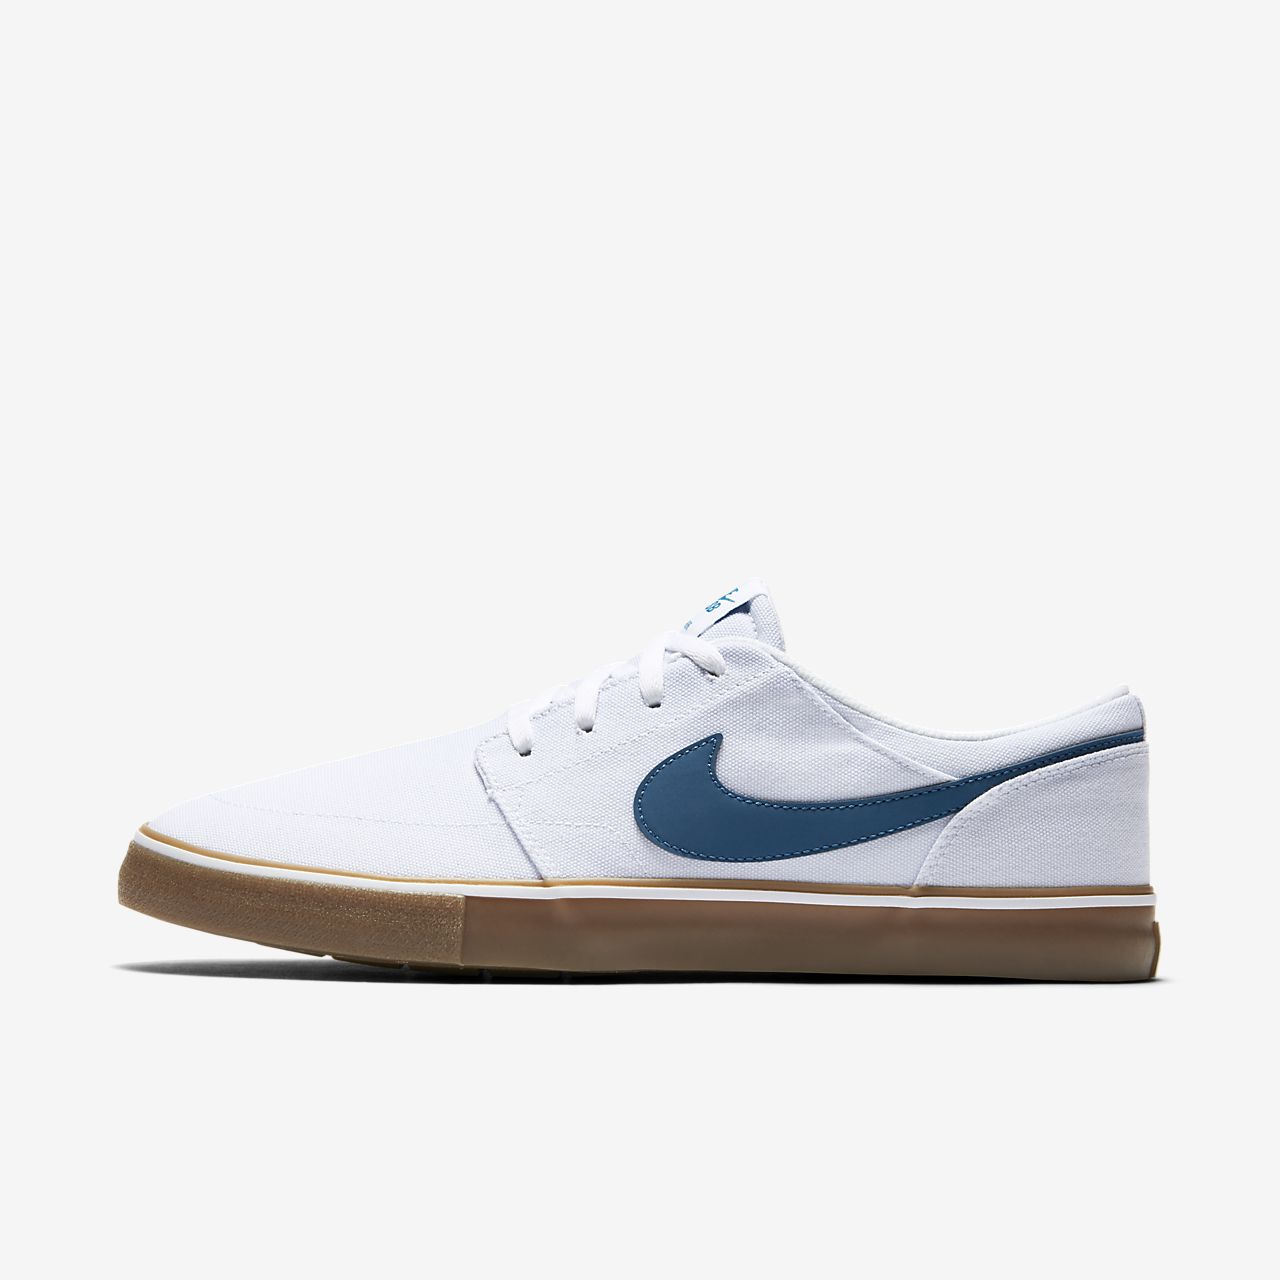 portmore men Nike sb portmore pairs a minimal look with a modern fit autoclave construction for flexibility and boardfeel.